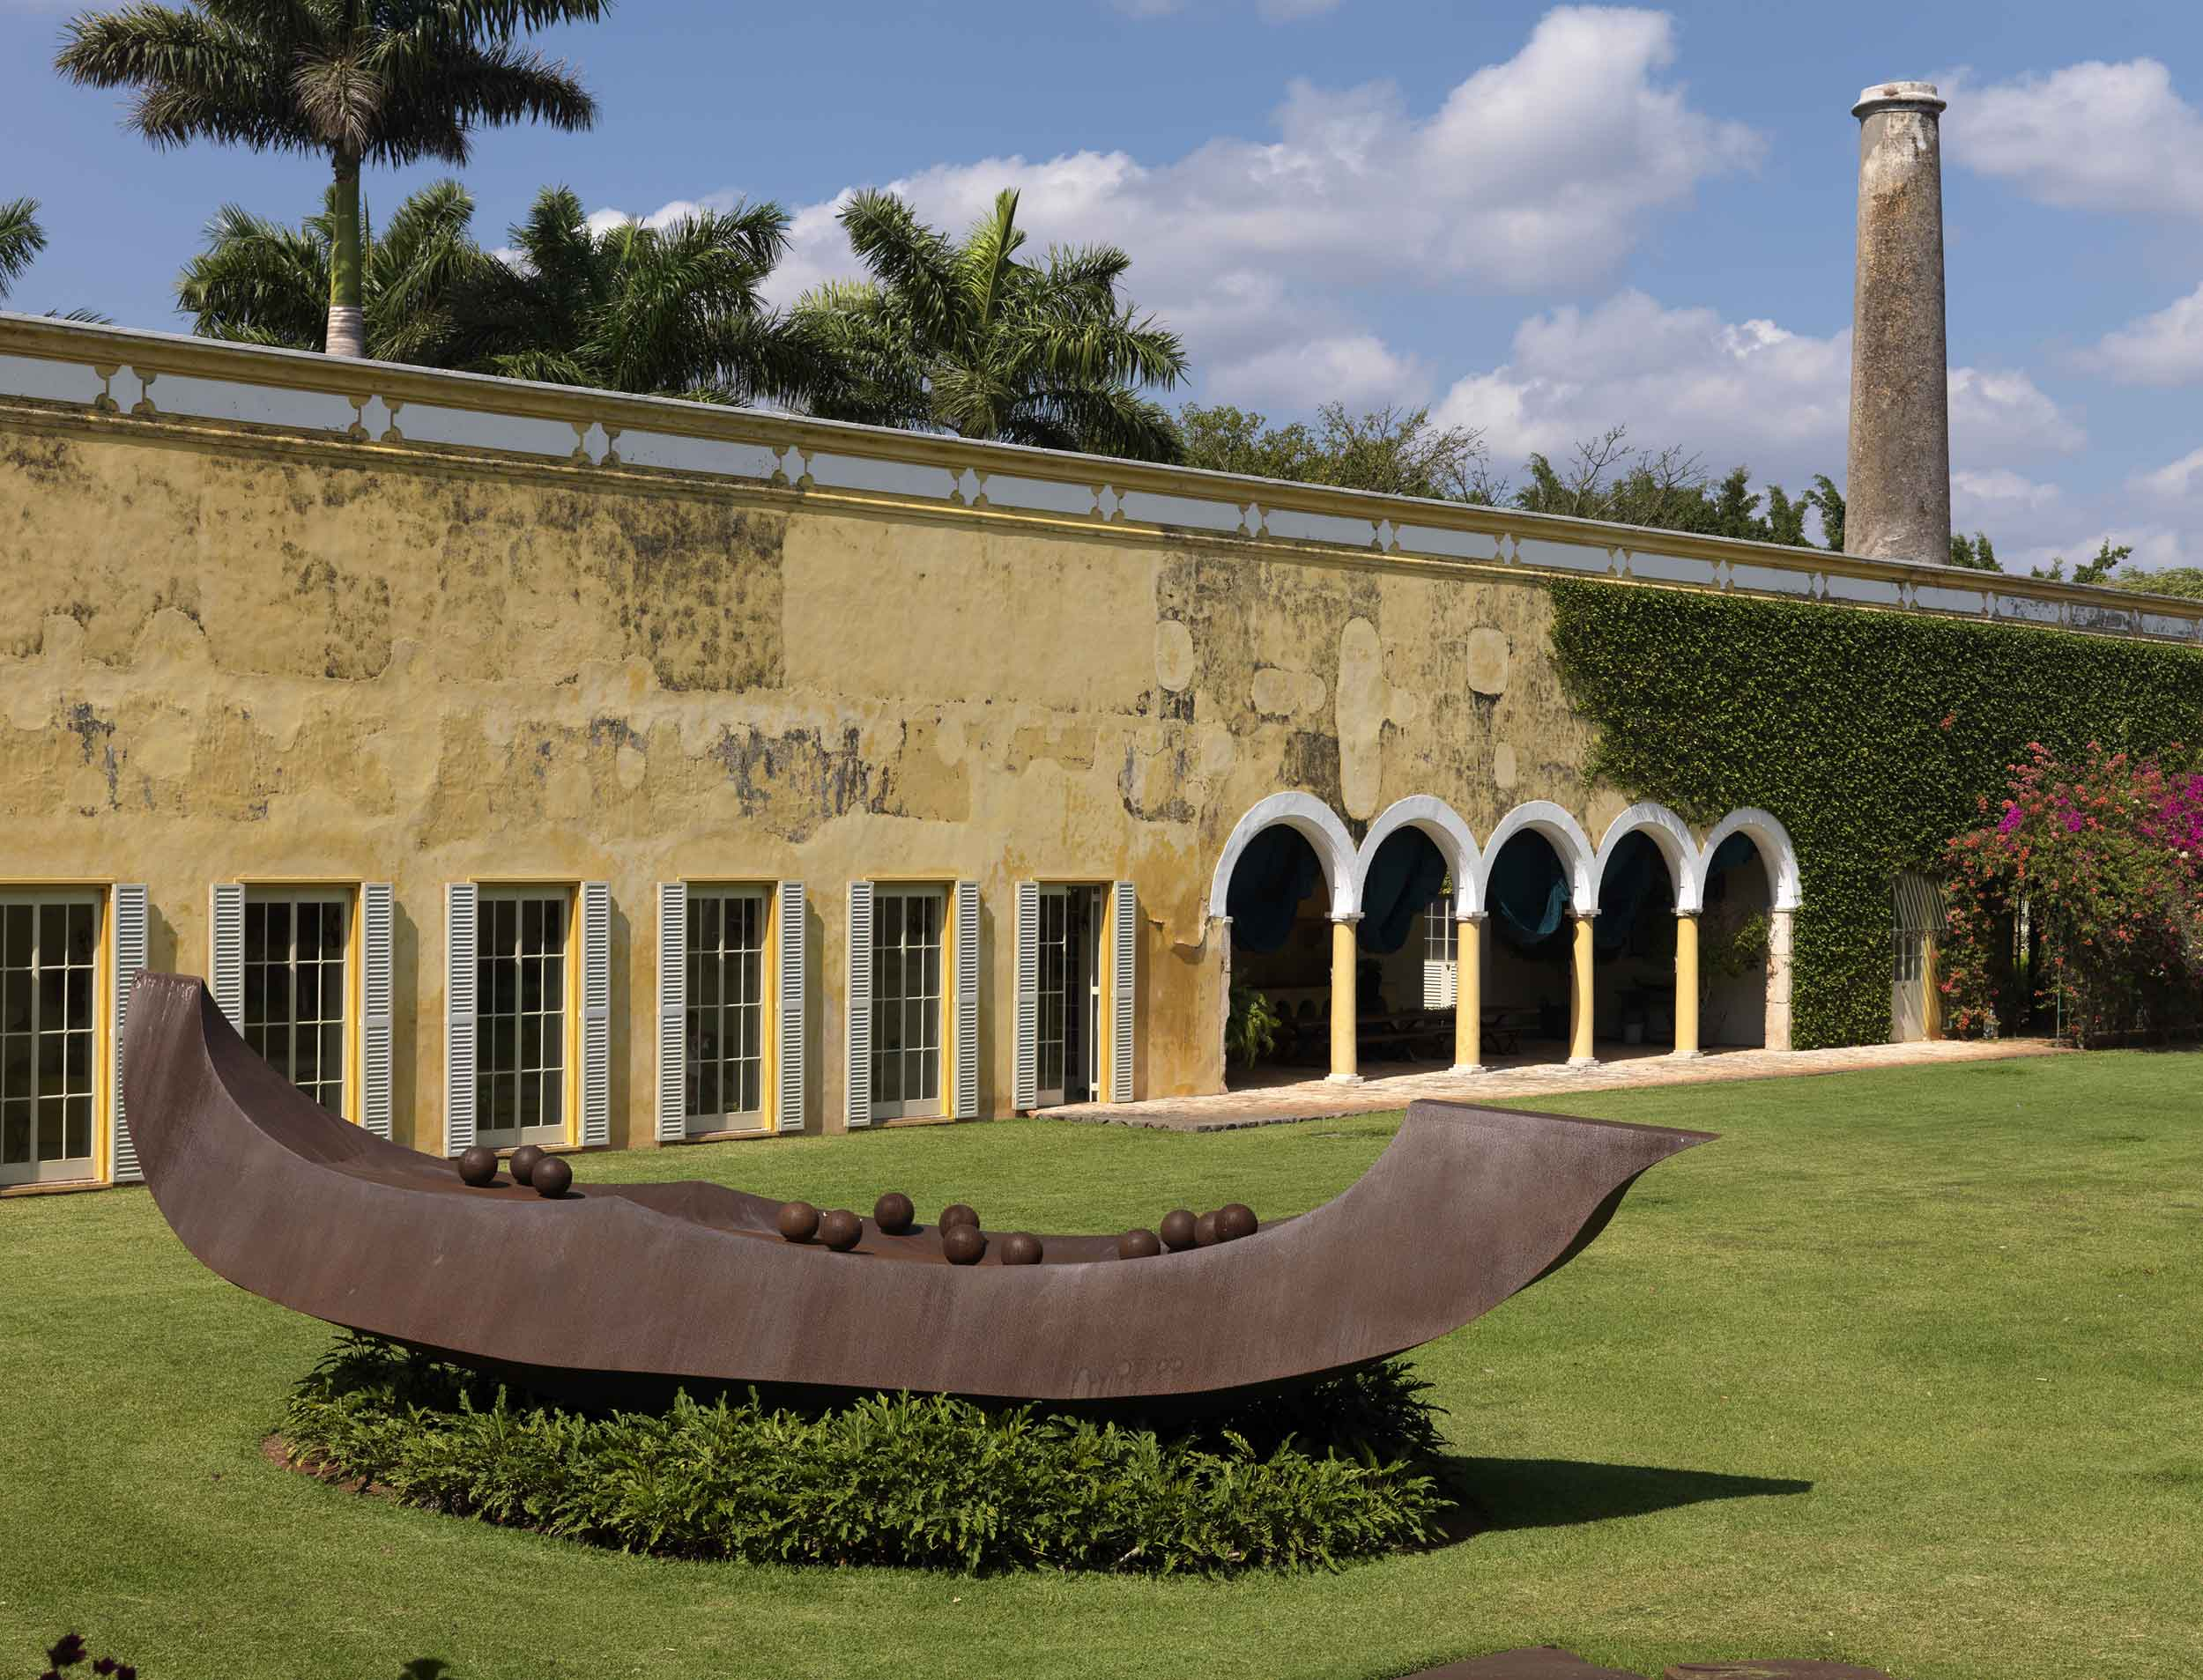 Hacienda San Bernardo, a 19th-century on the Yucatan Peninsula, is rooted in Mexican history.